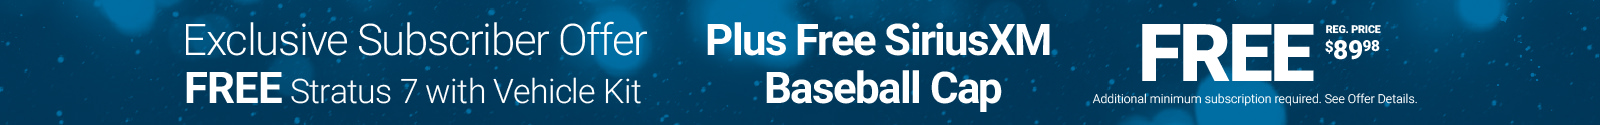 Exclusive offer: FREE Stratus 7 with vehicle kit and free SiriusXM hat